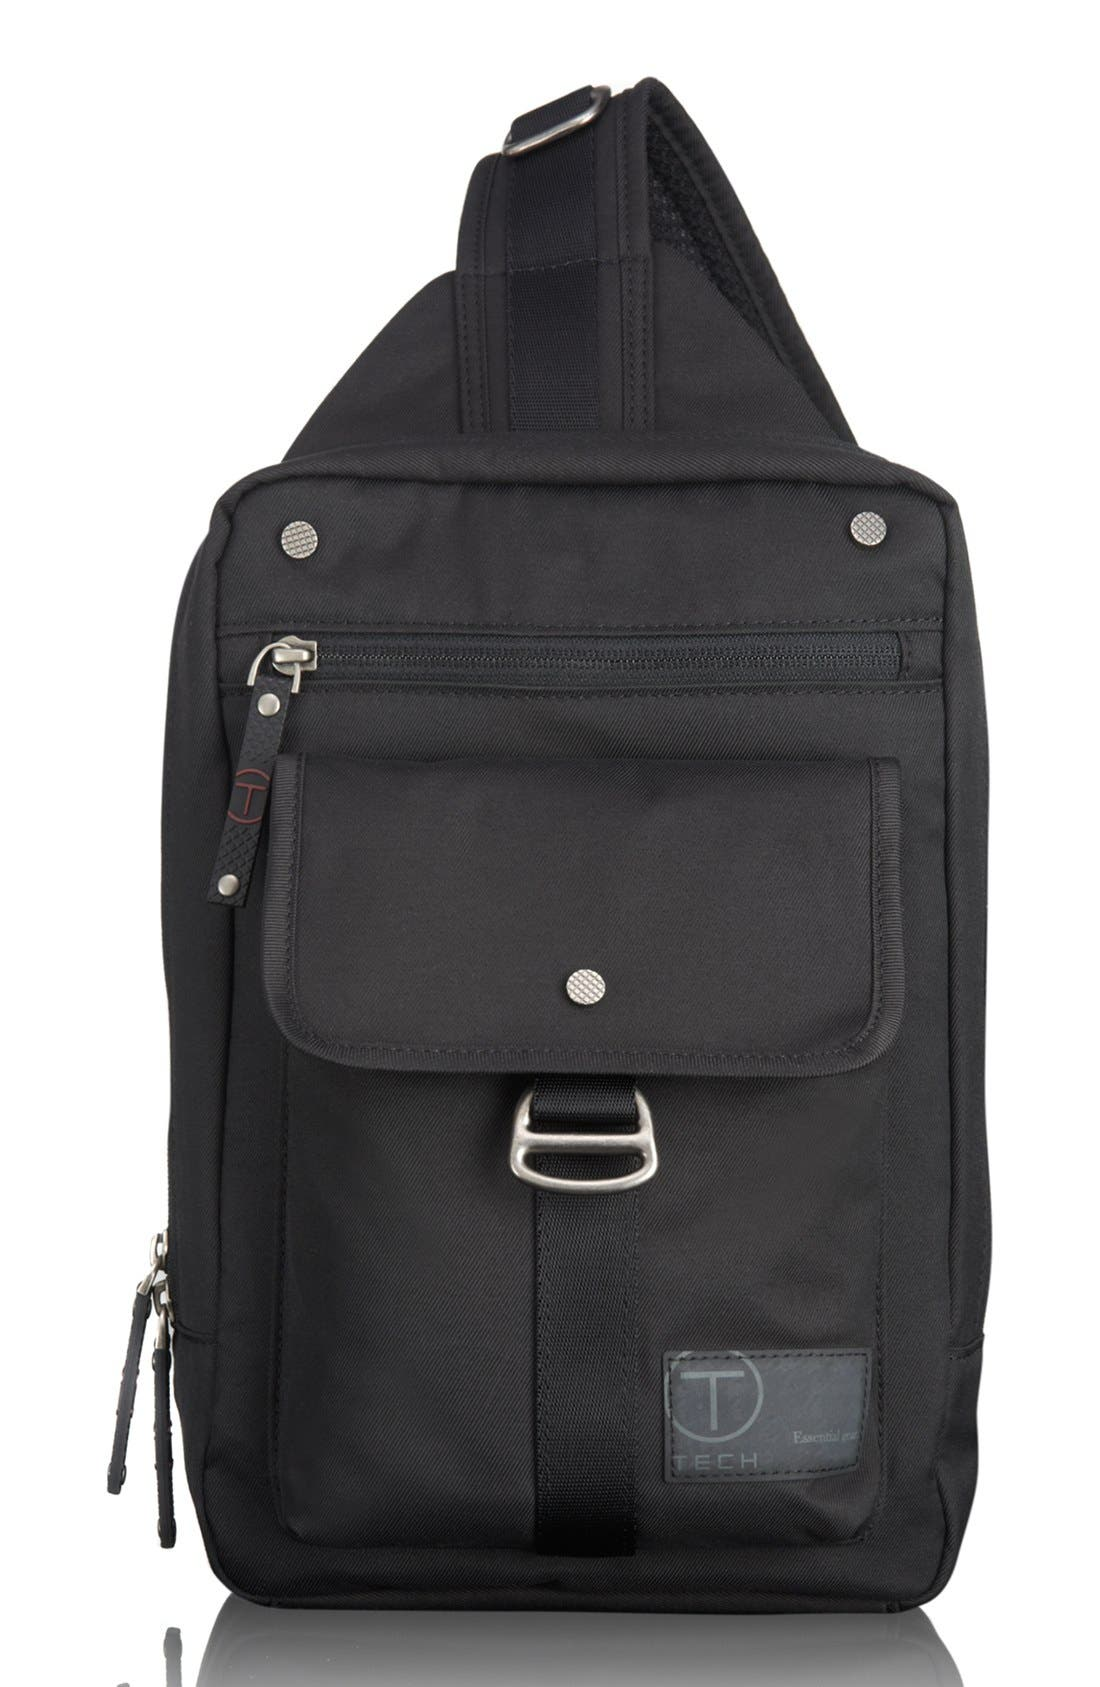 Main Image - T-Tech by Tumi 'Icon - Newton' Sling Backpack